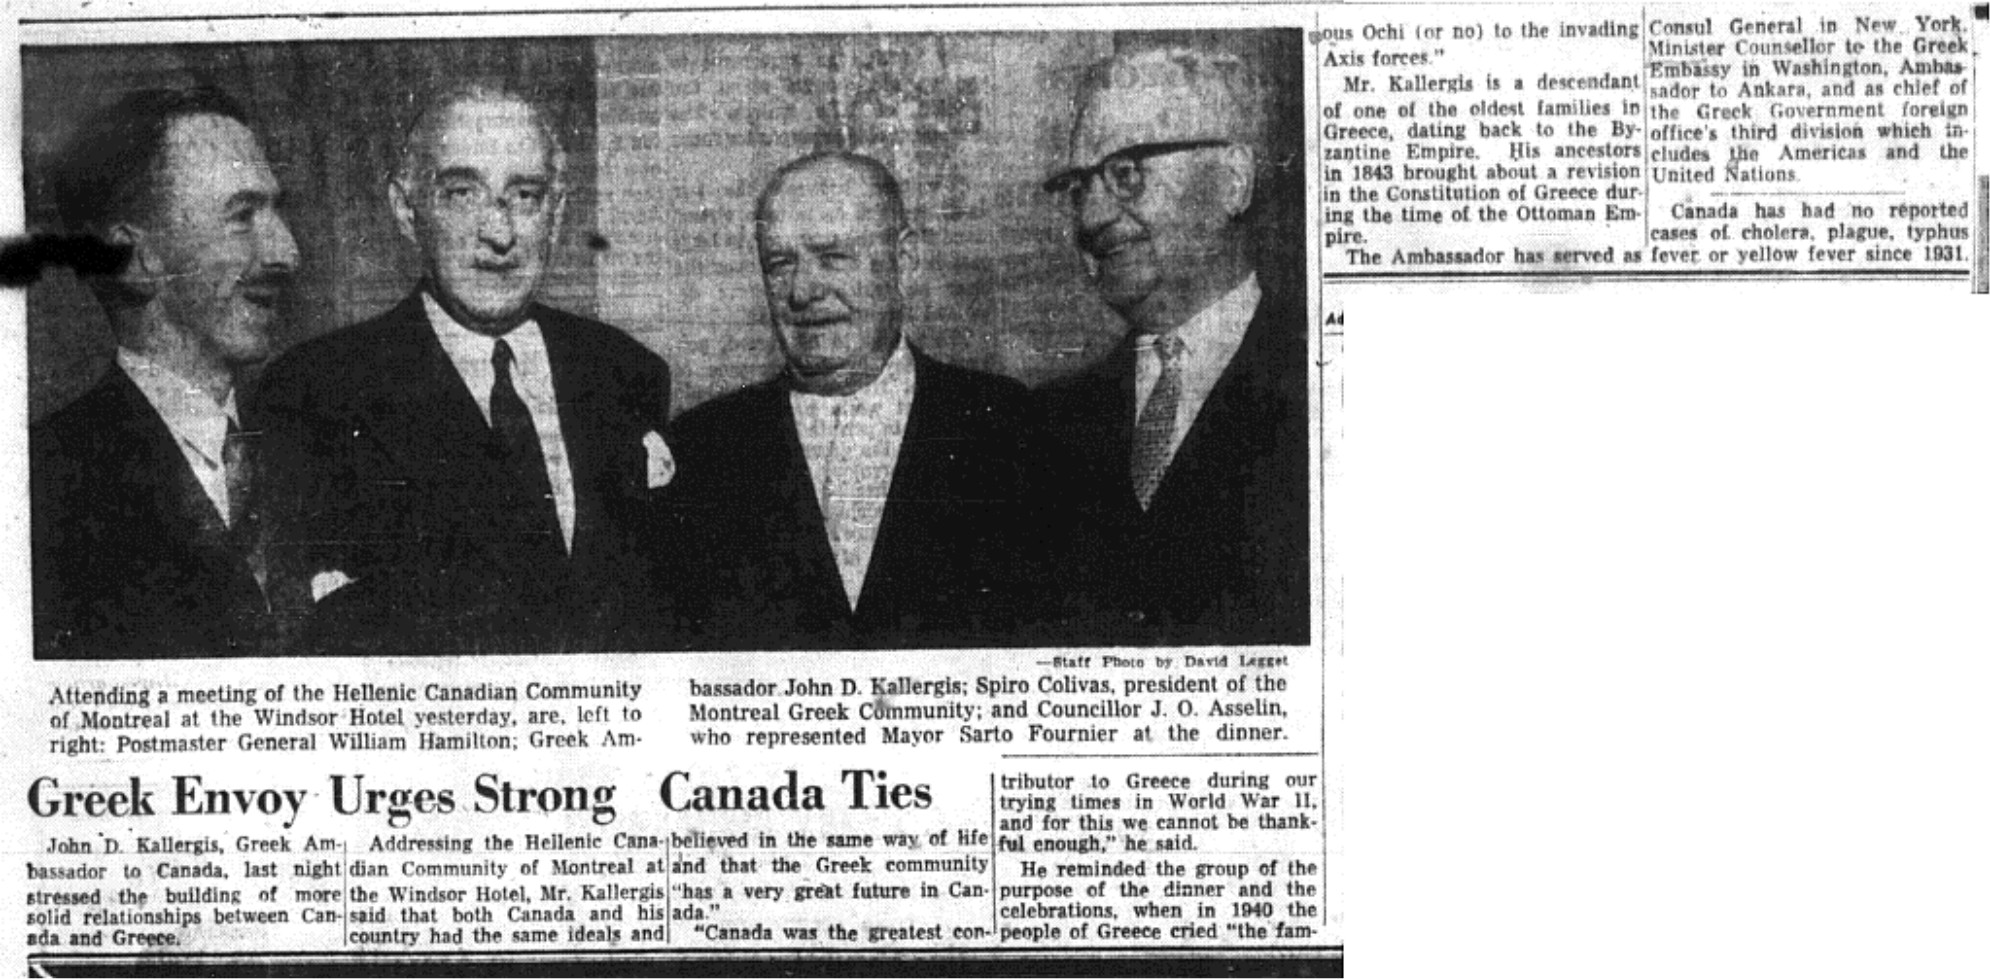 "The need for stable bonds between Greece and Canada  Statement of the President of the Greek Community of Montreal concerning  the need to develop firm ties between Greece and Canada. ""Greek Envoy urges strong Canada ties"", Montreal Daily Star, 02/11/1959.   Source: Canadian Press"